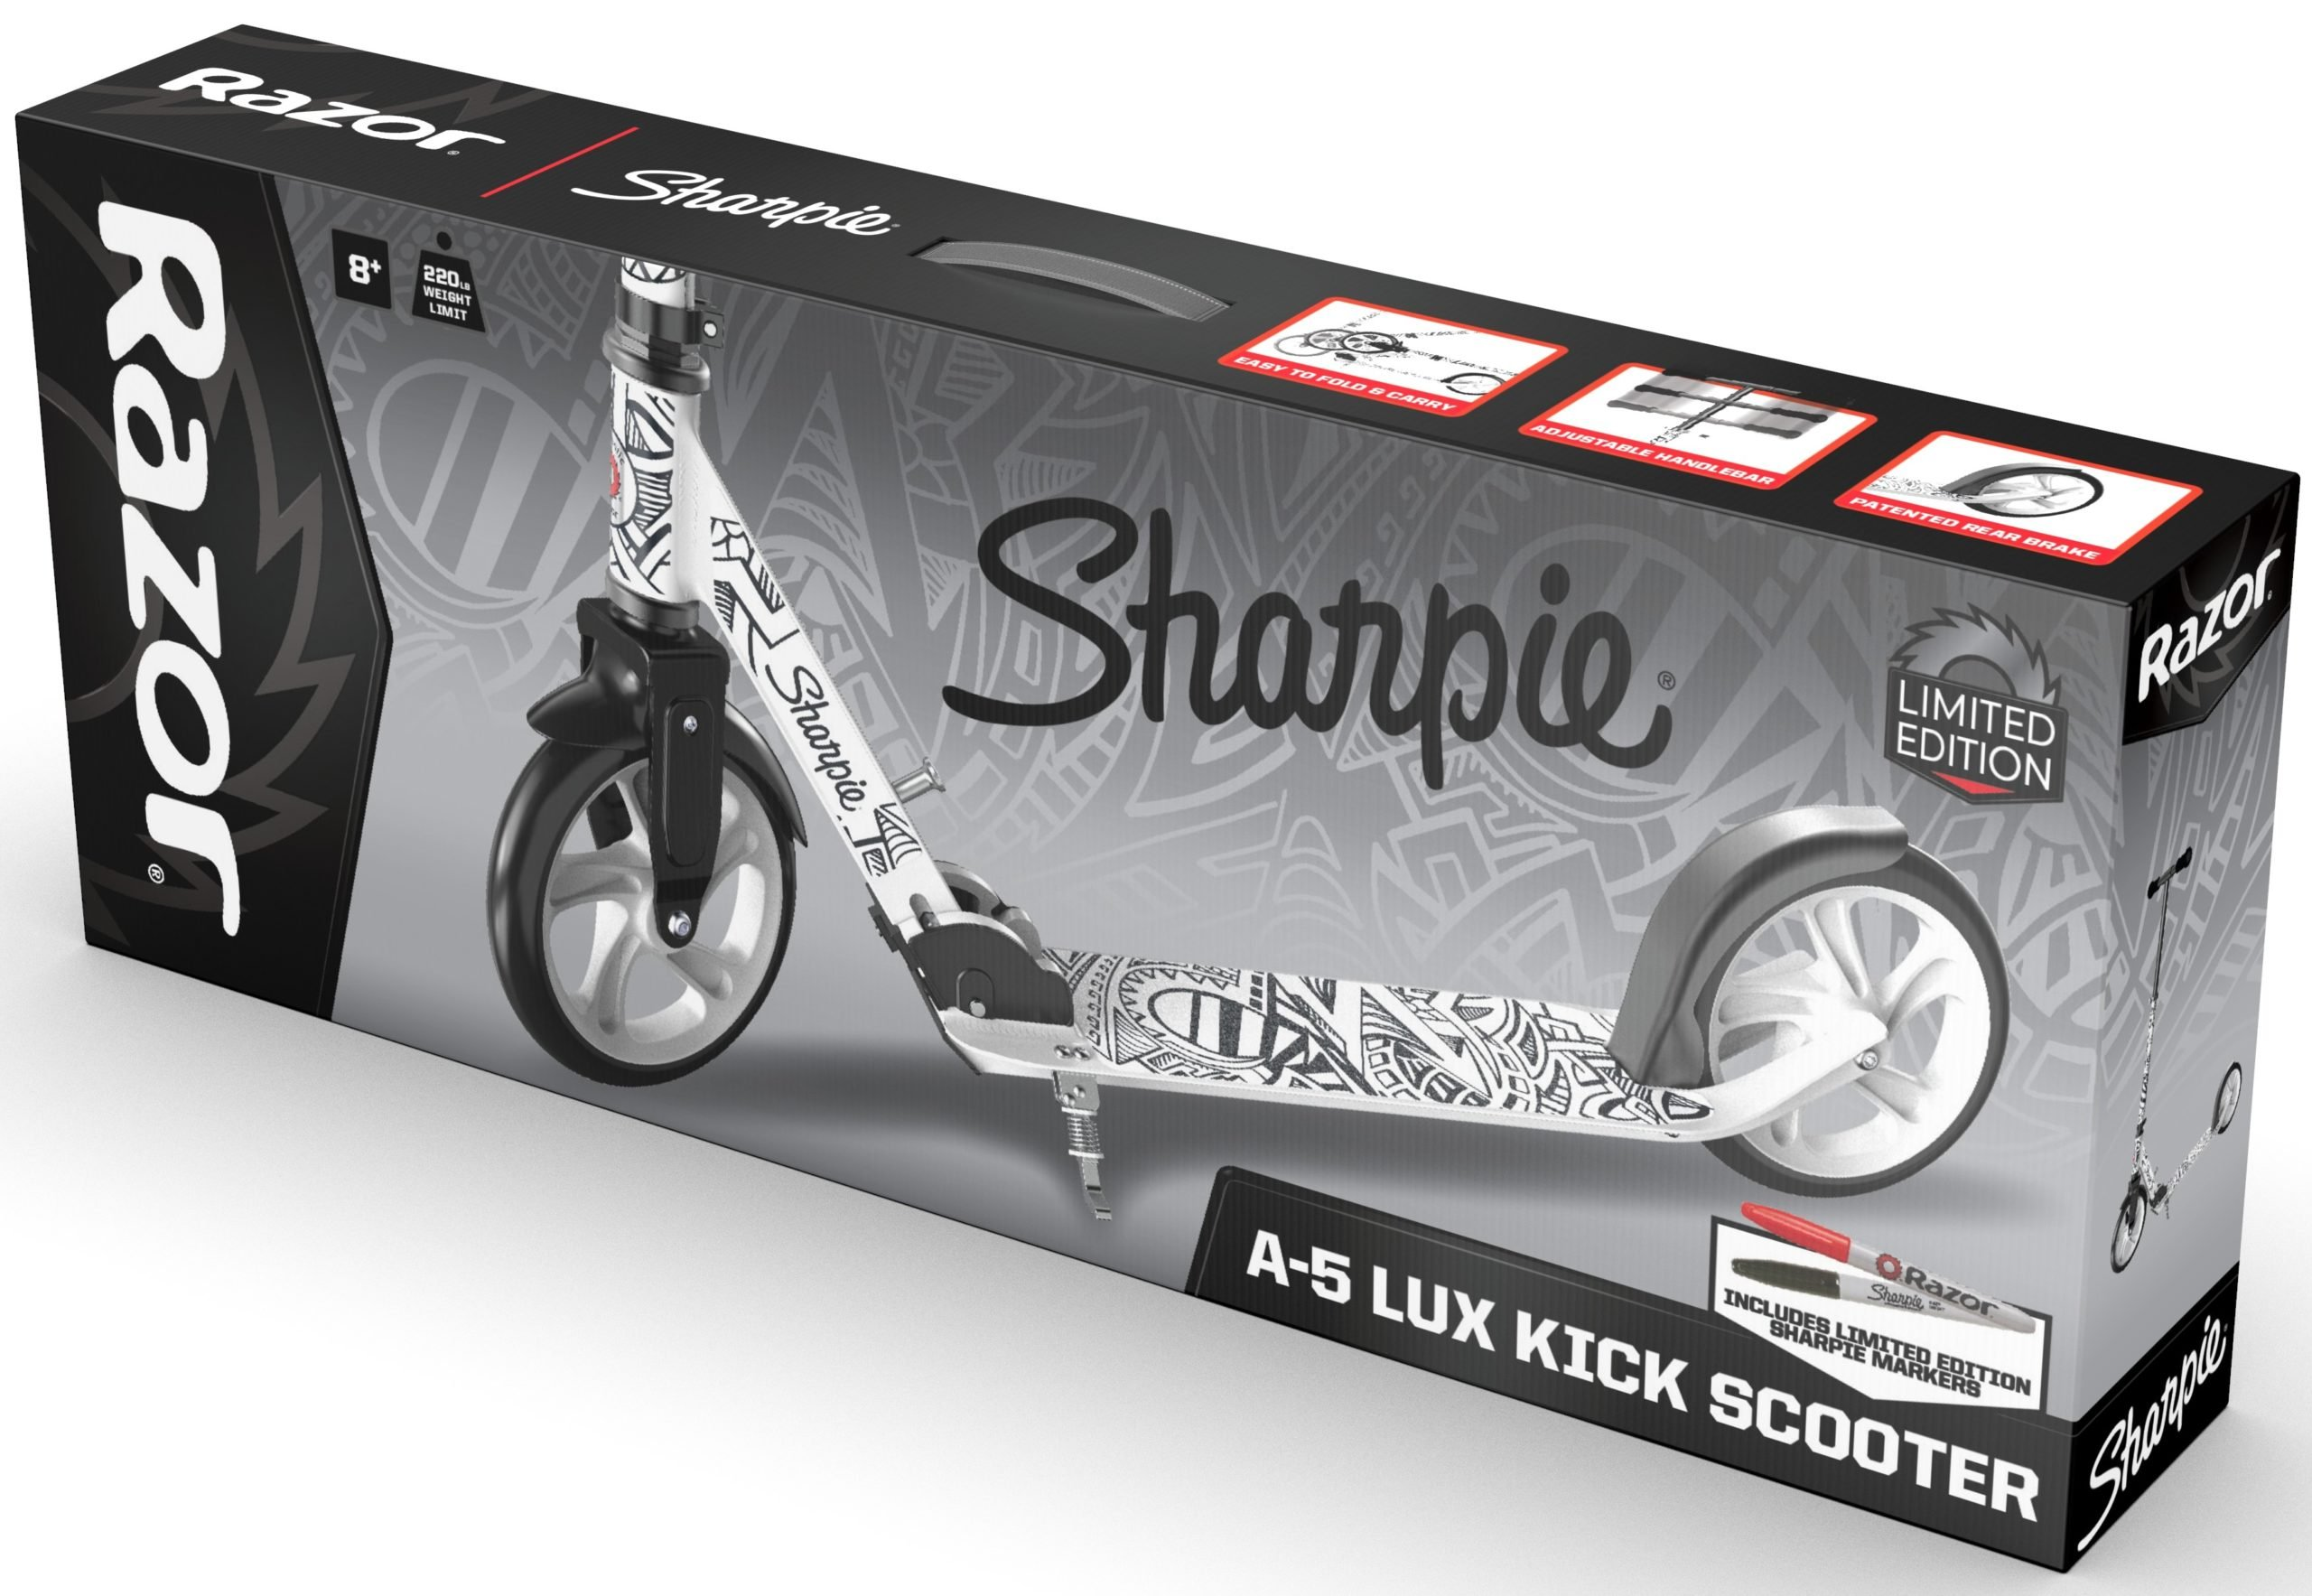 These Razor scooters are inspired by AriZona Iced Tea, Sharpie, Sriracha, and Takis Snacks 15